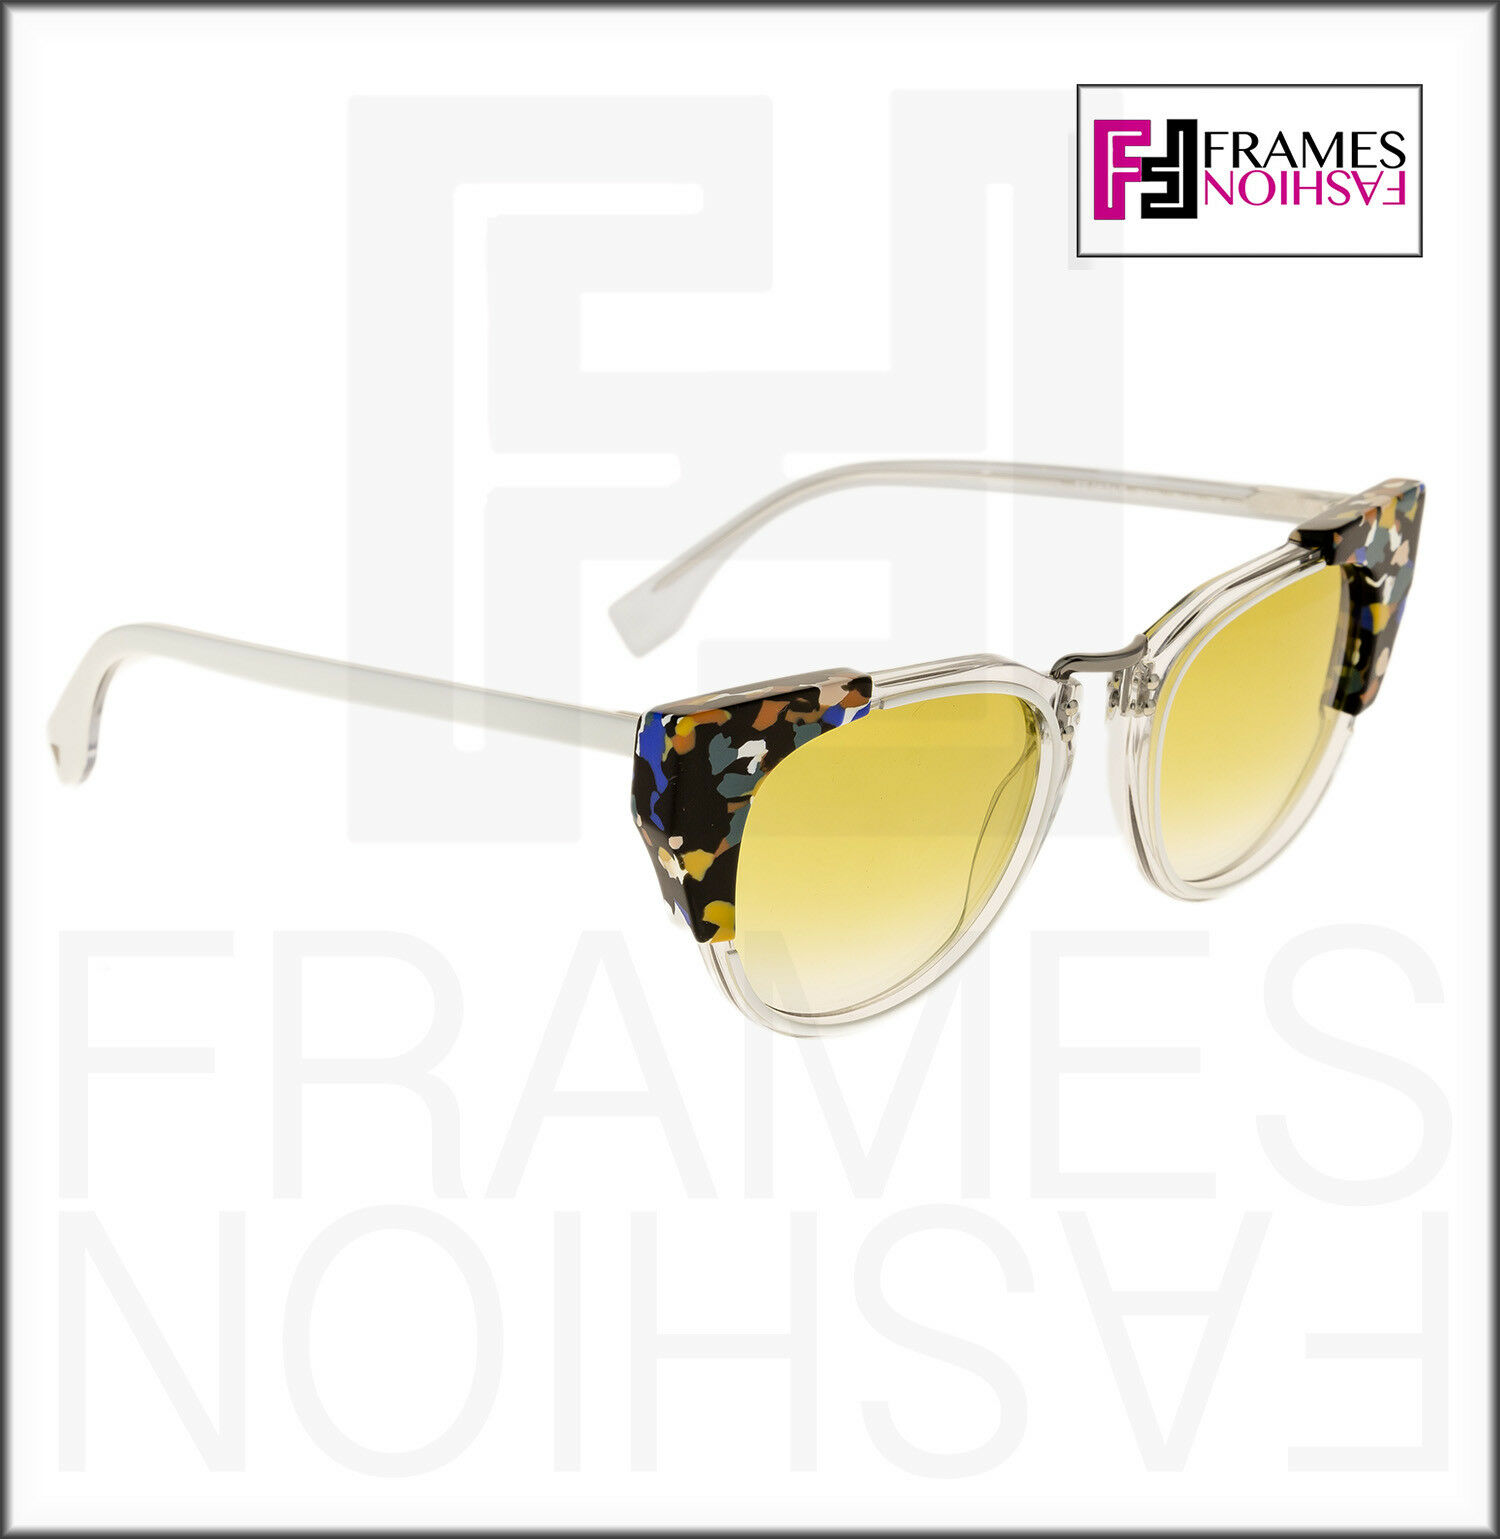 bad6d73a4de3 Fendi FF 0074 s Sunglasses RCKSV Transparent Crystal White Marbled Yellow  50 Mm for sale online